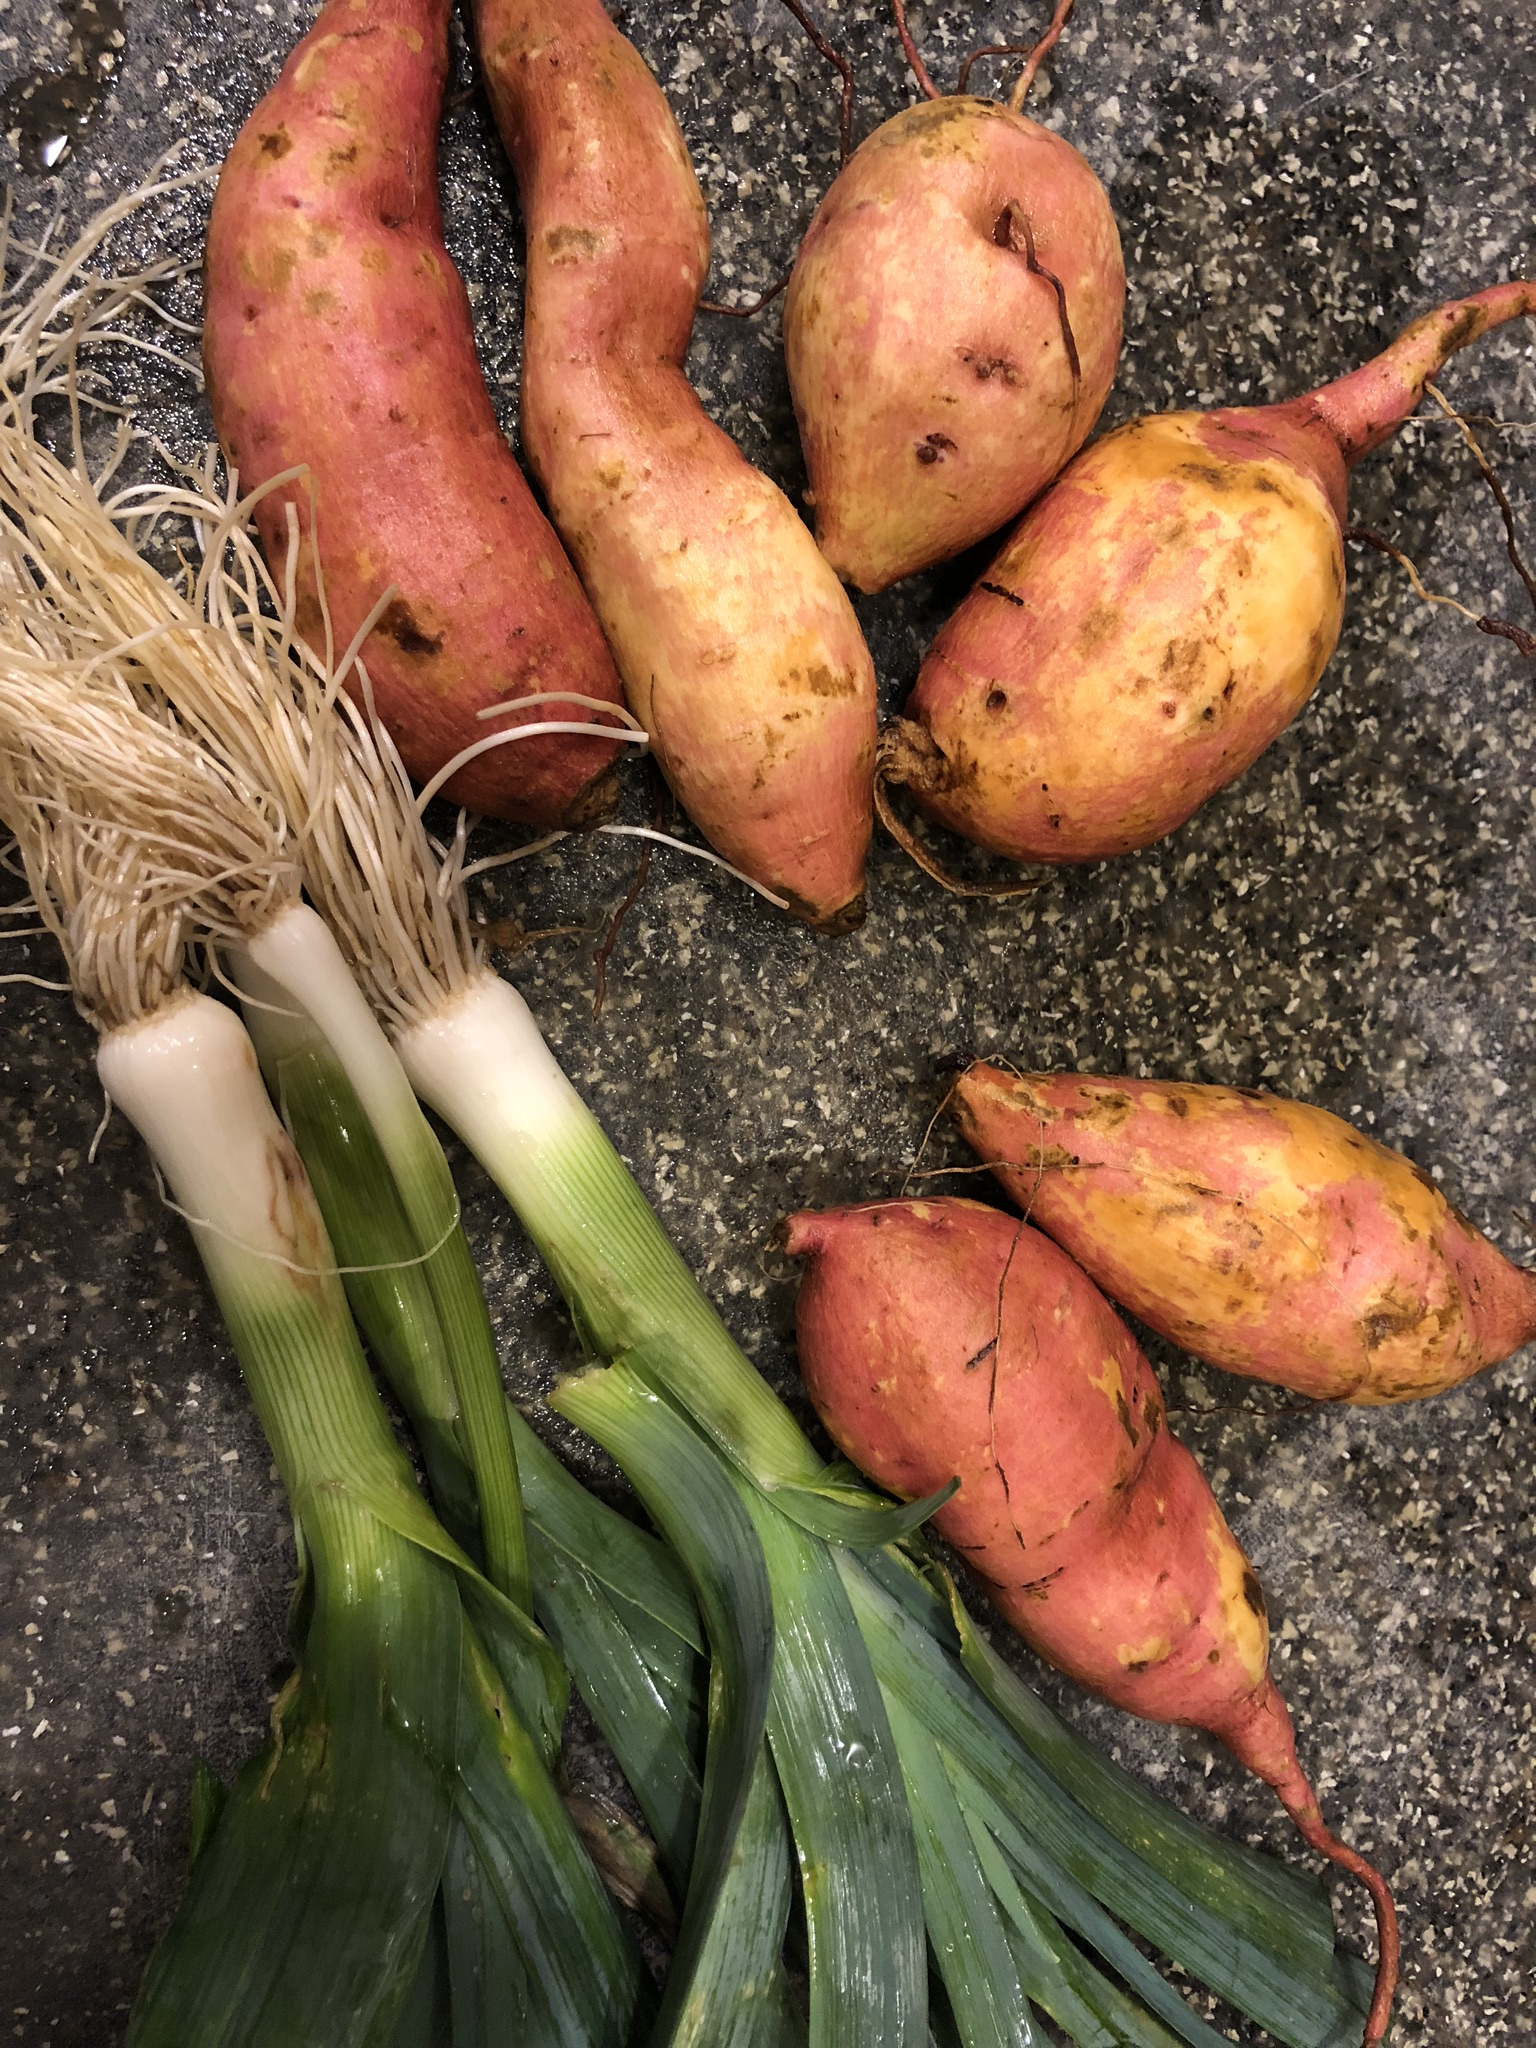 Burgundy sweet potatoes and leeks